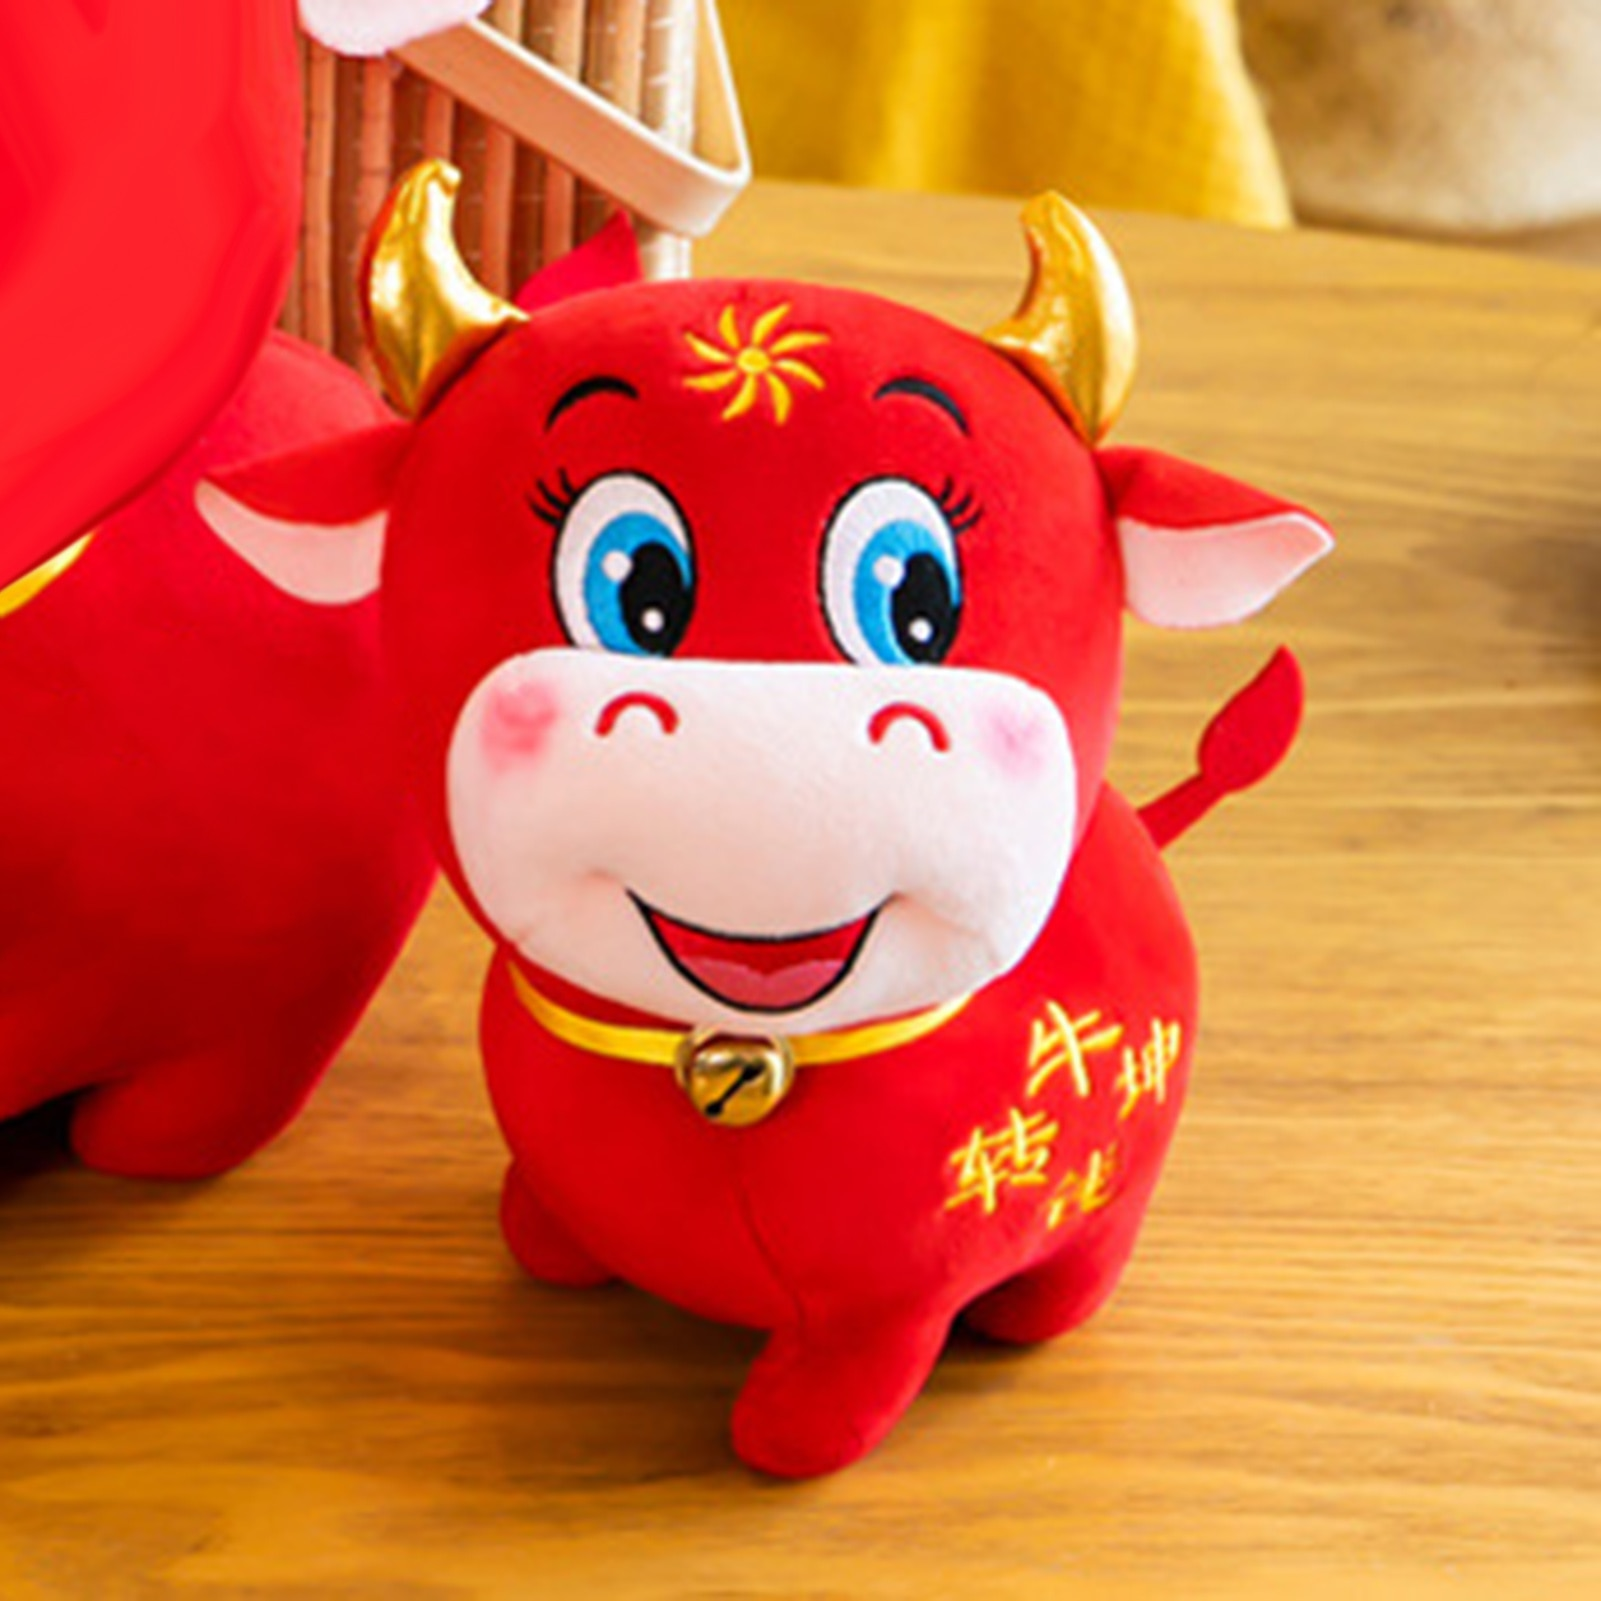 Chinese Zodiac Ox Cattle Plush Toys Red Milk Cow Mascot Stuffed Doll Pendant Toy Home Decration Gift